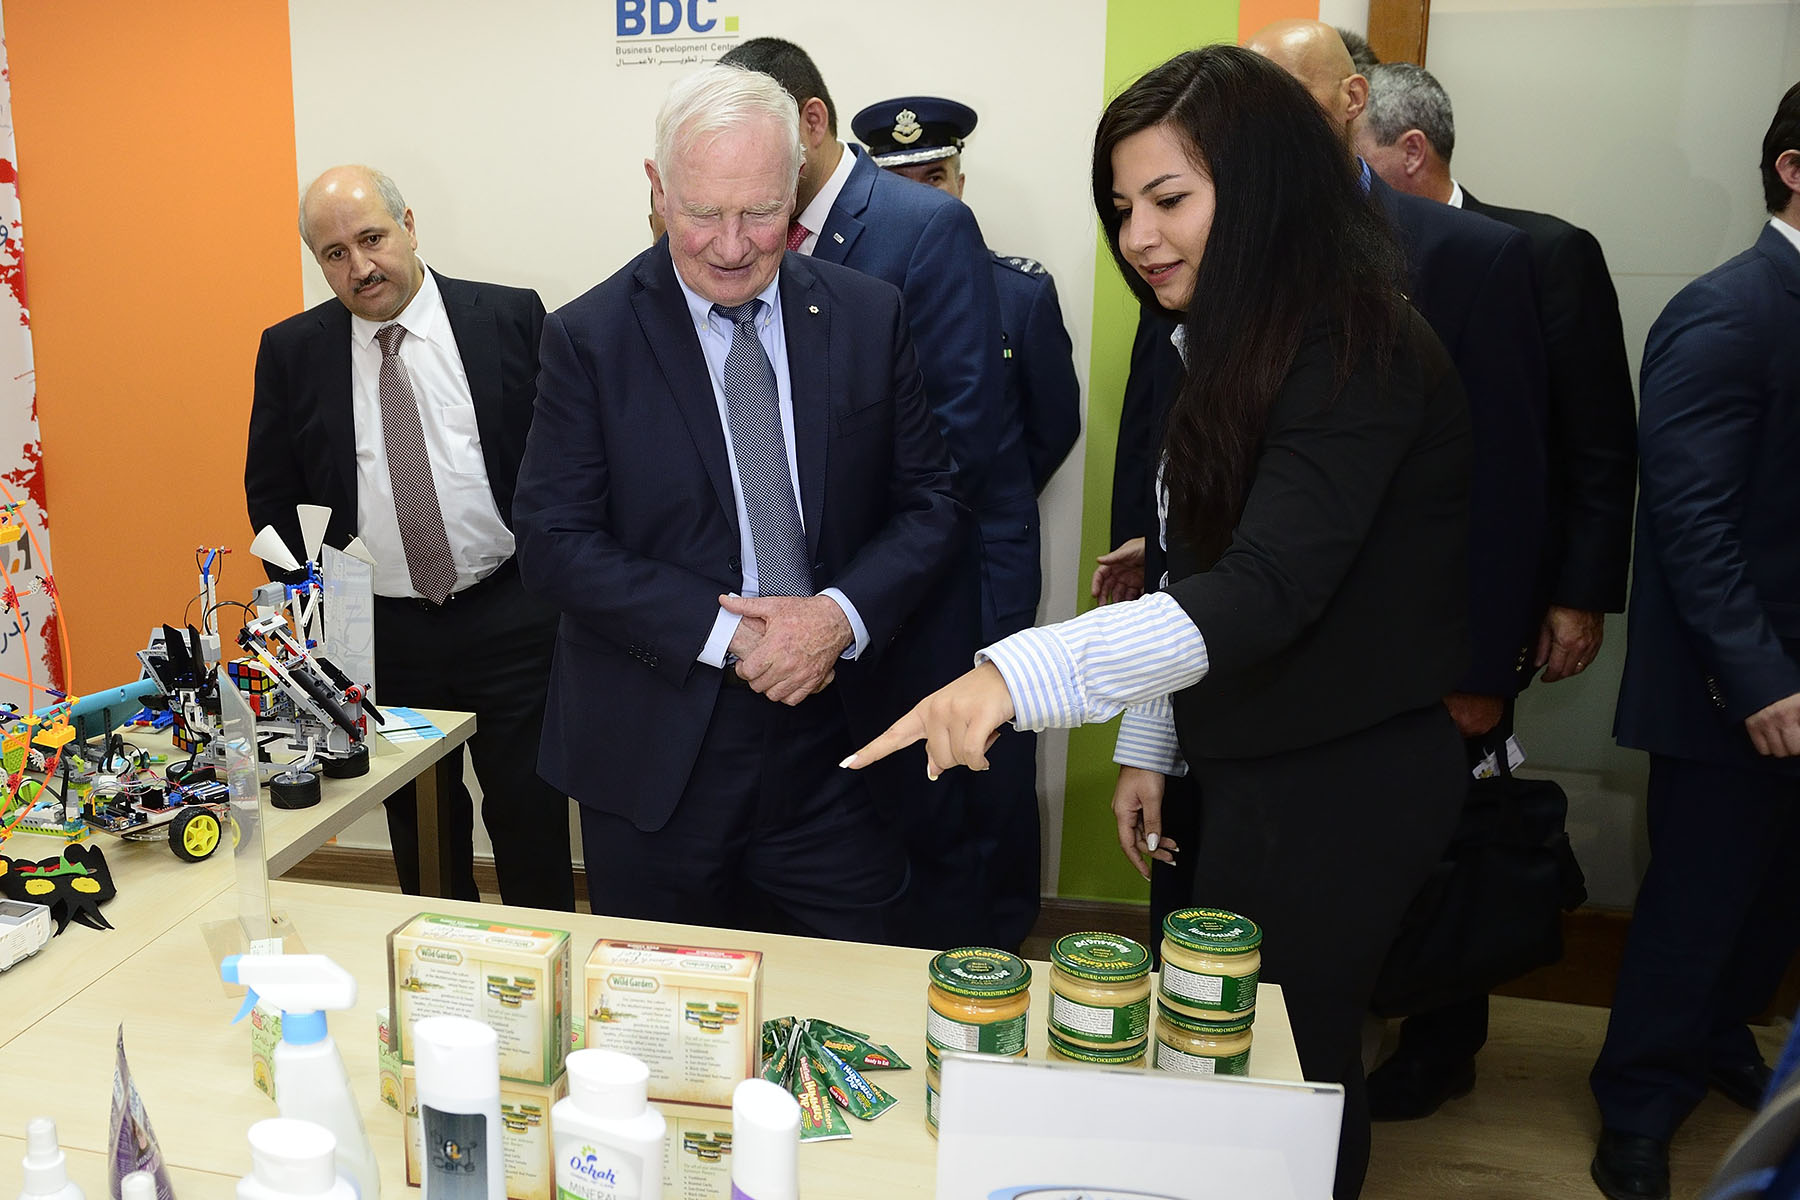 The Governor General and members of the Canadian delegation visited Amman's Business Development Centre (BDC).